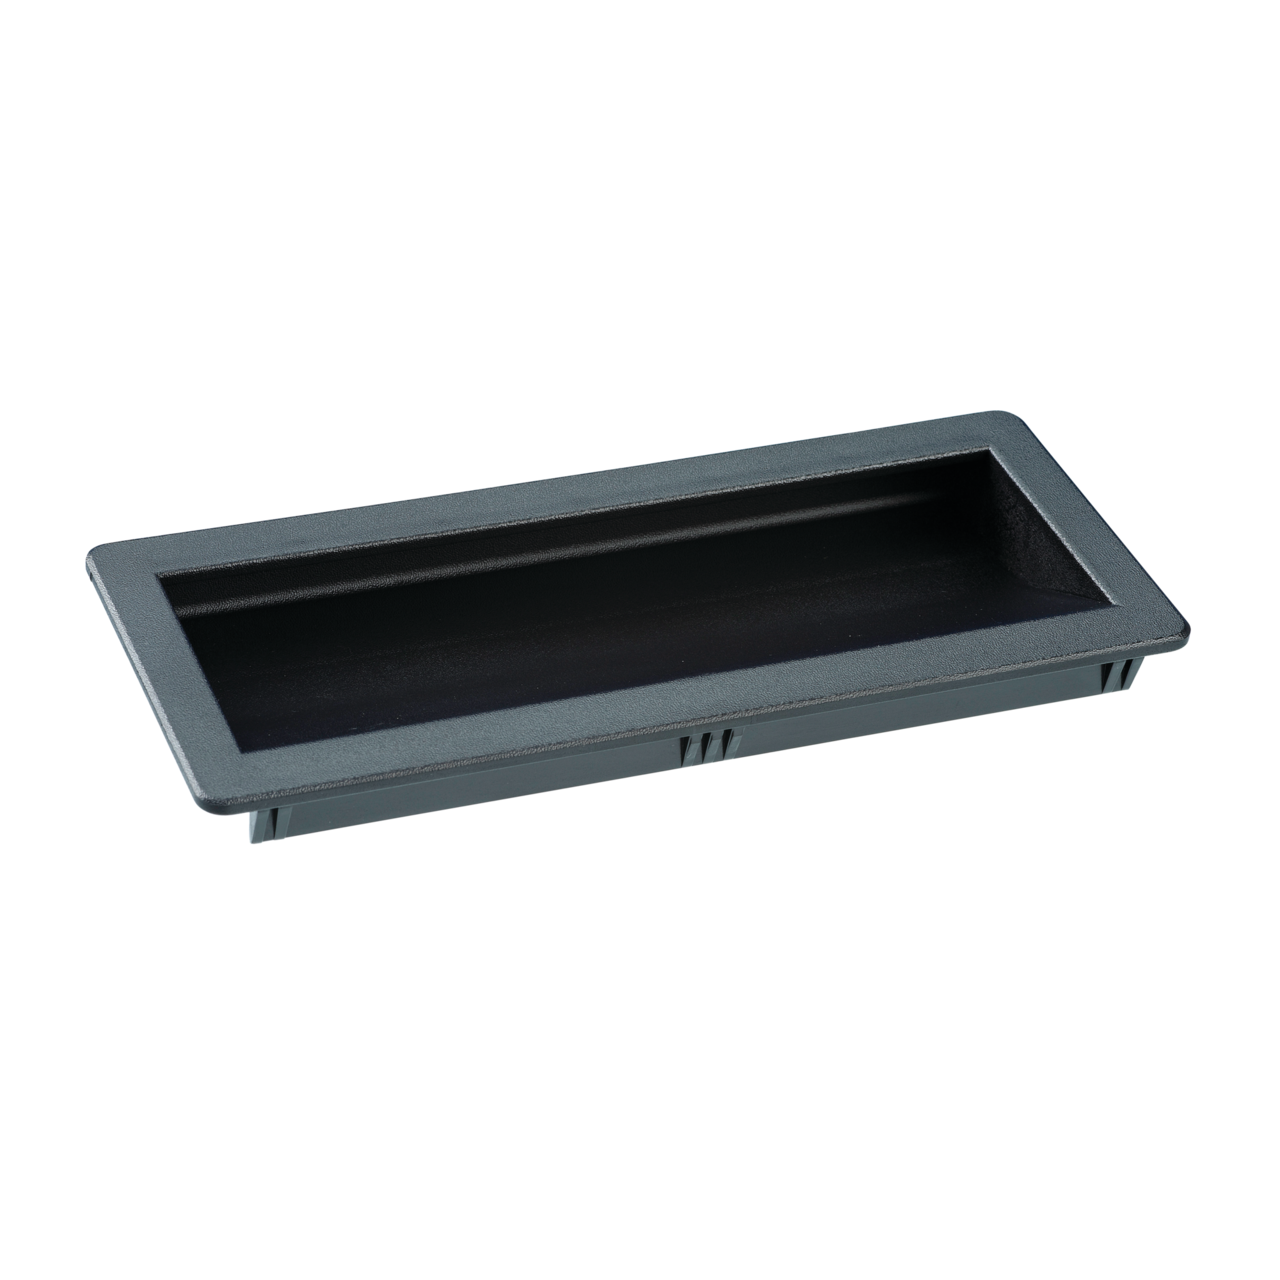 Image for Tray Handle from Schroff - Asia Pacific